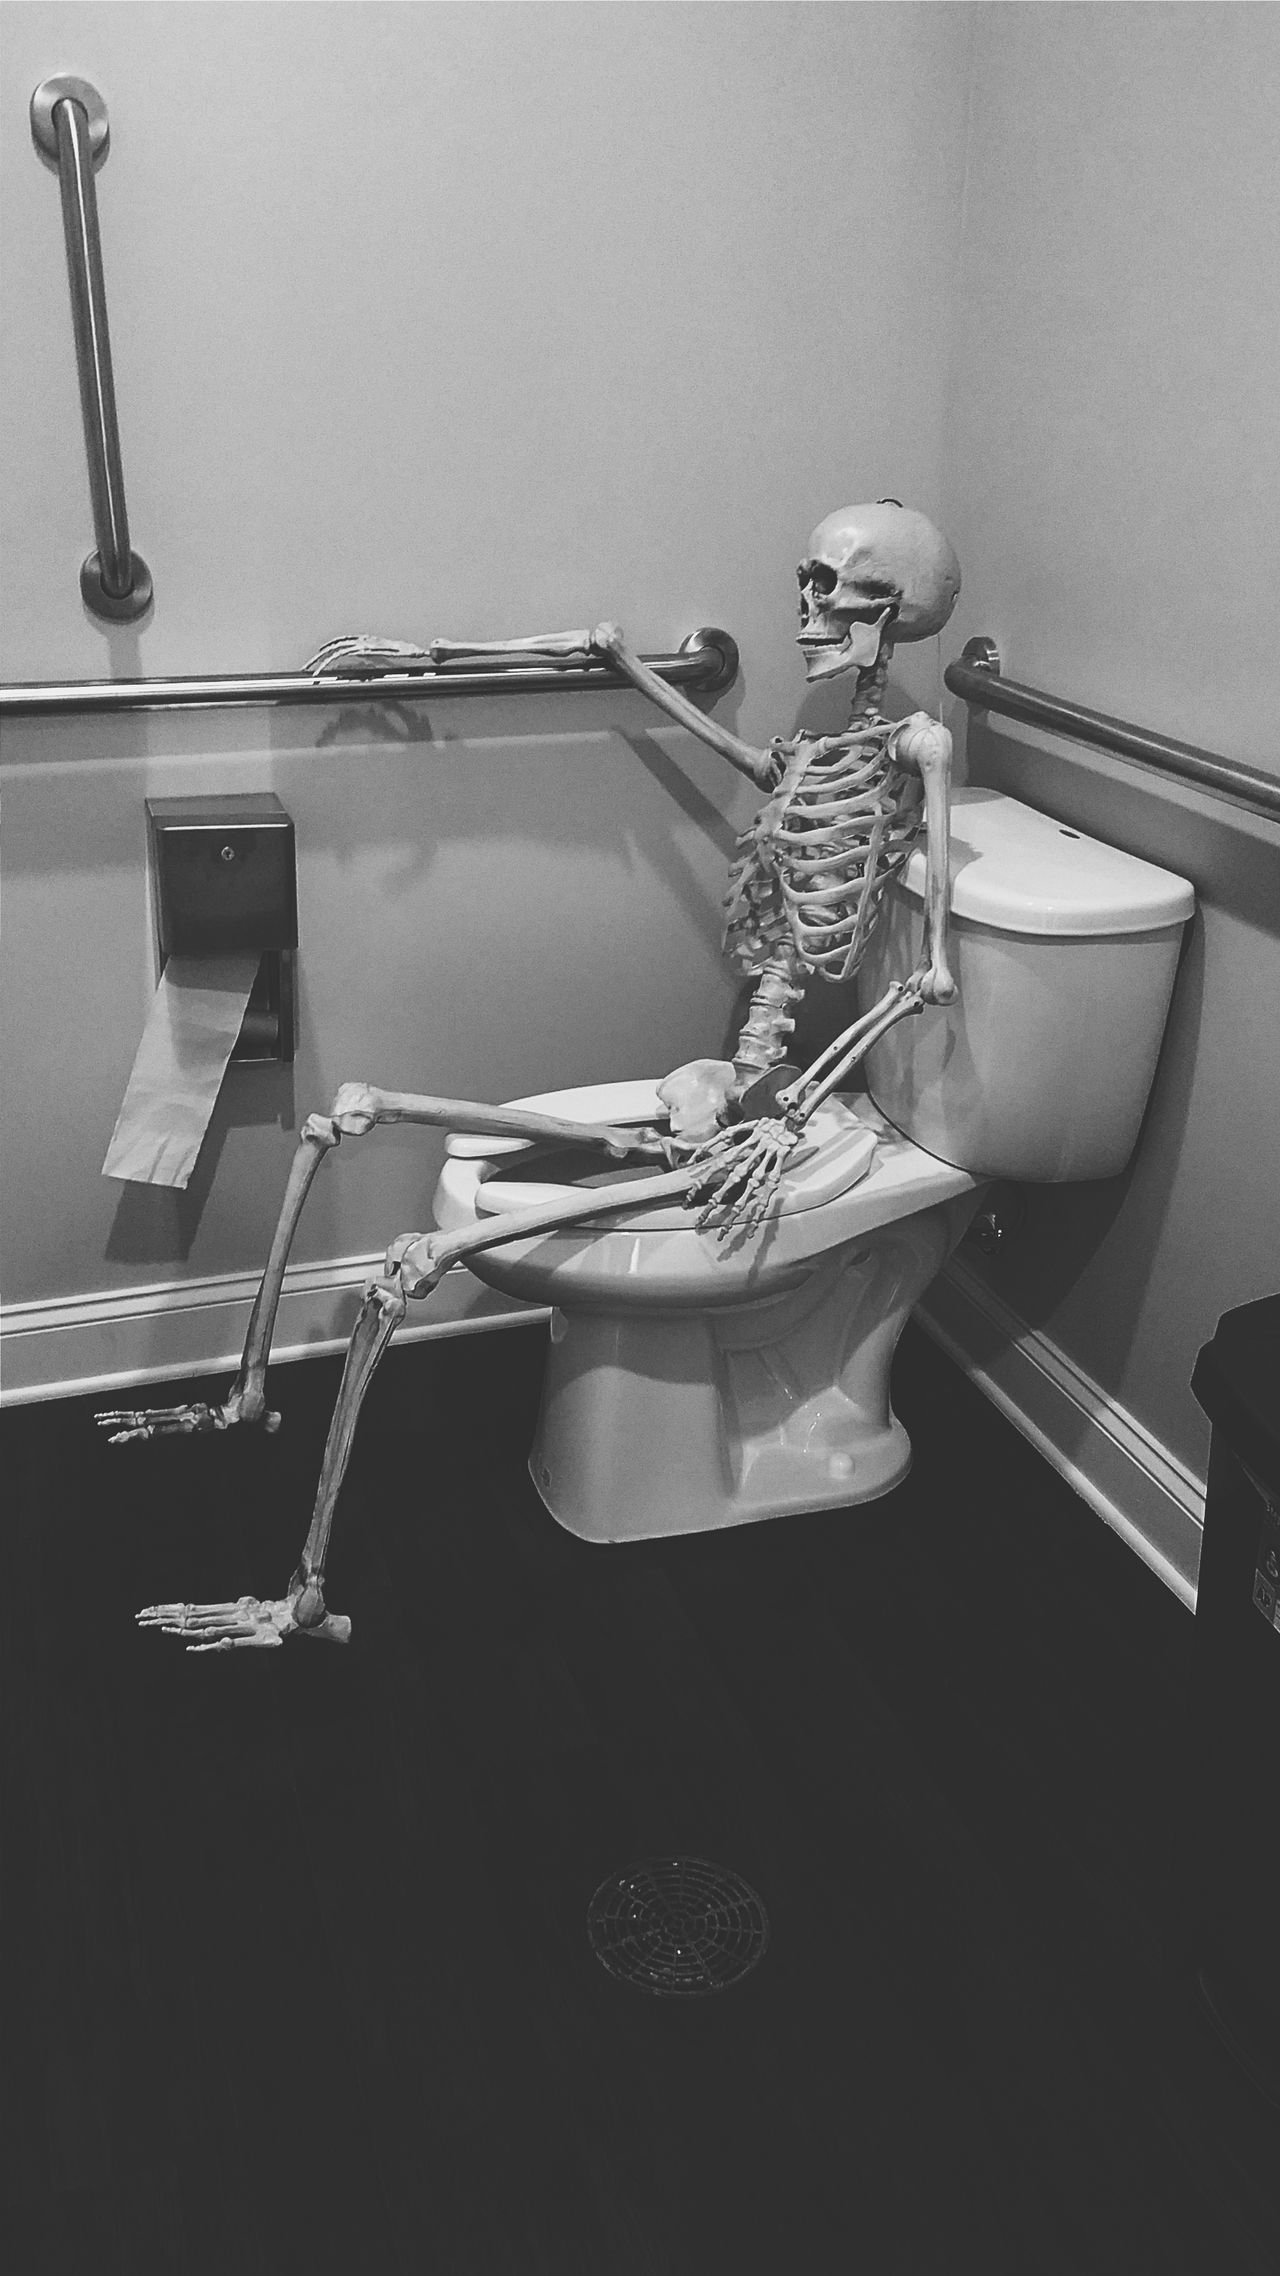 Skeleton Boredtodeath Scary Creepy Bathroom Art Volltography Skull This Is Halloween Check This Out Cool Hanging Out Buy Me Indefinite